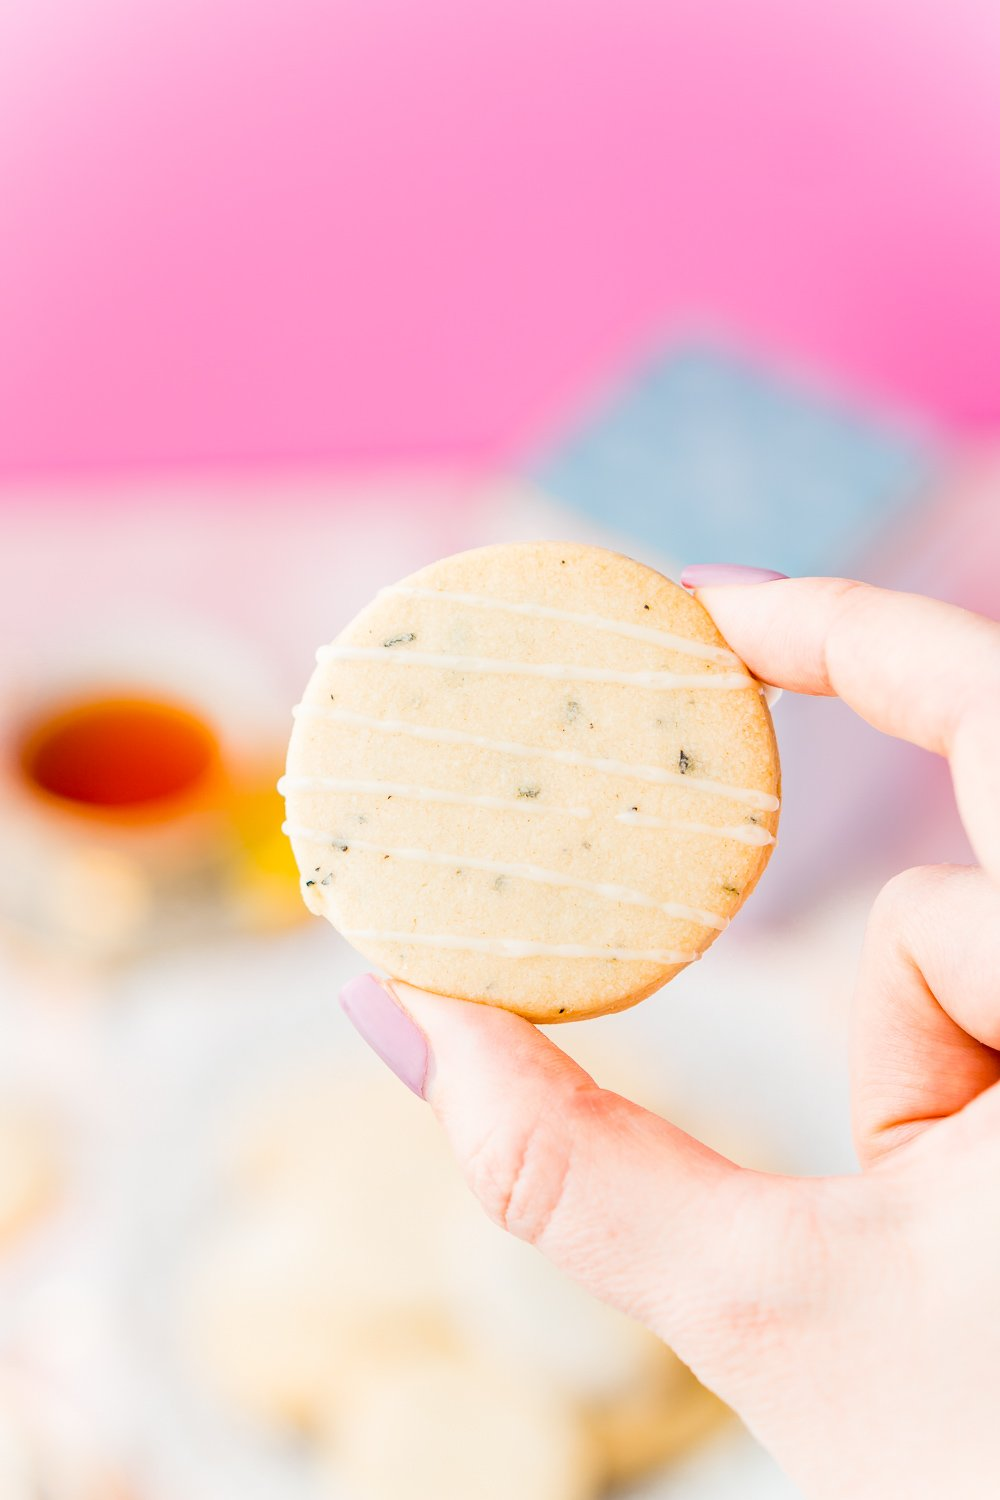 Woman's hand holding an Earl Grey Shortbread Cookie.